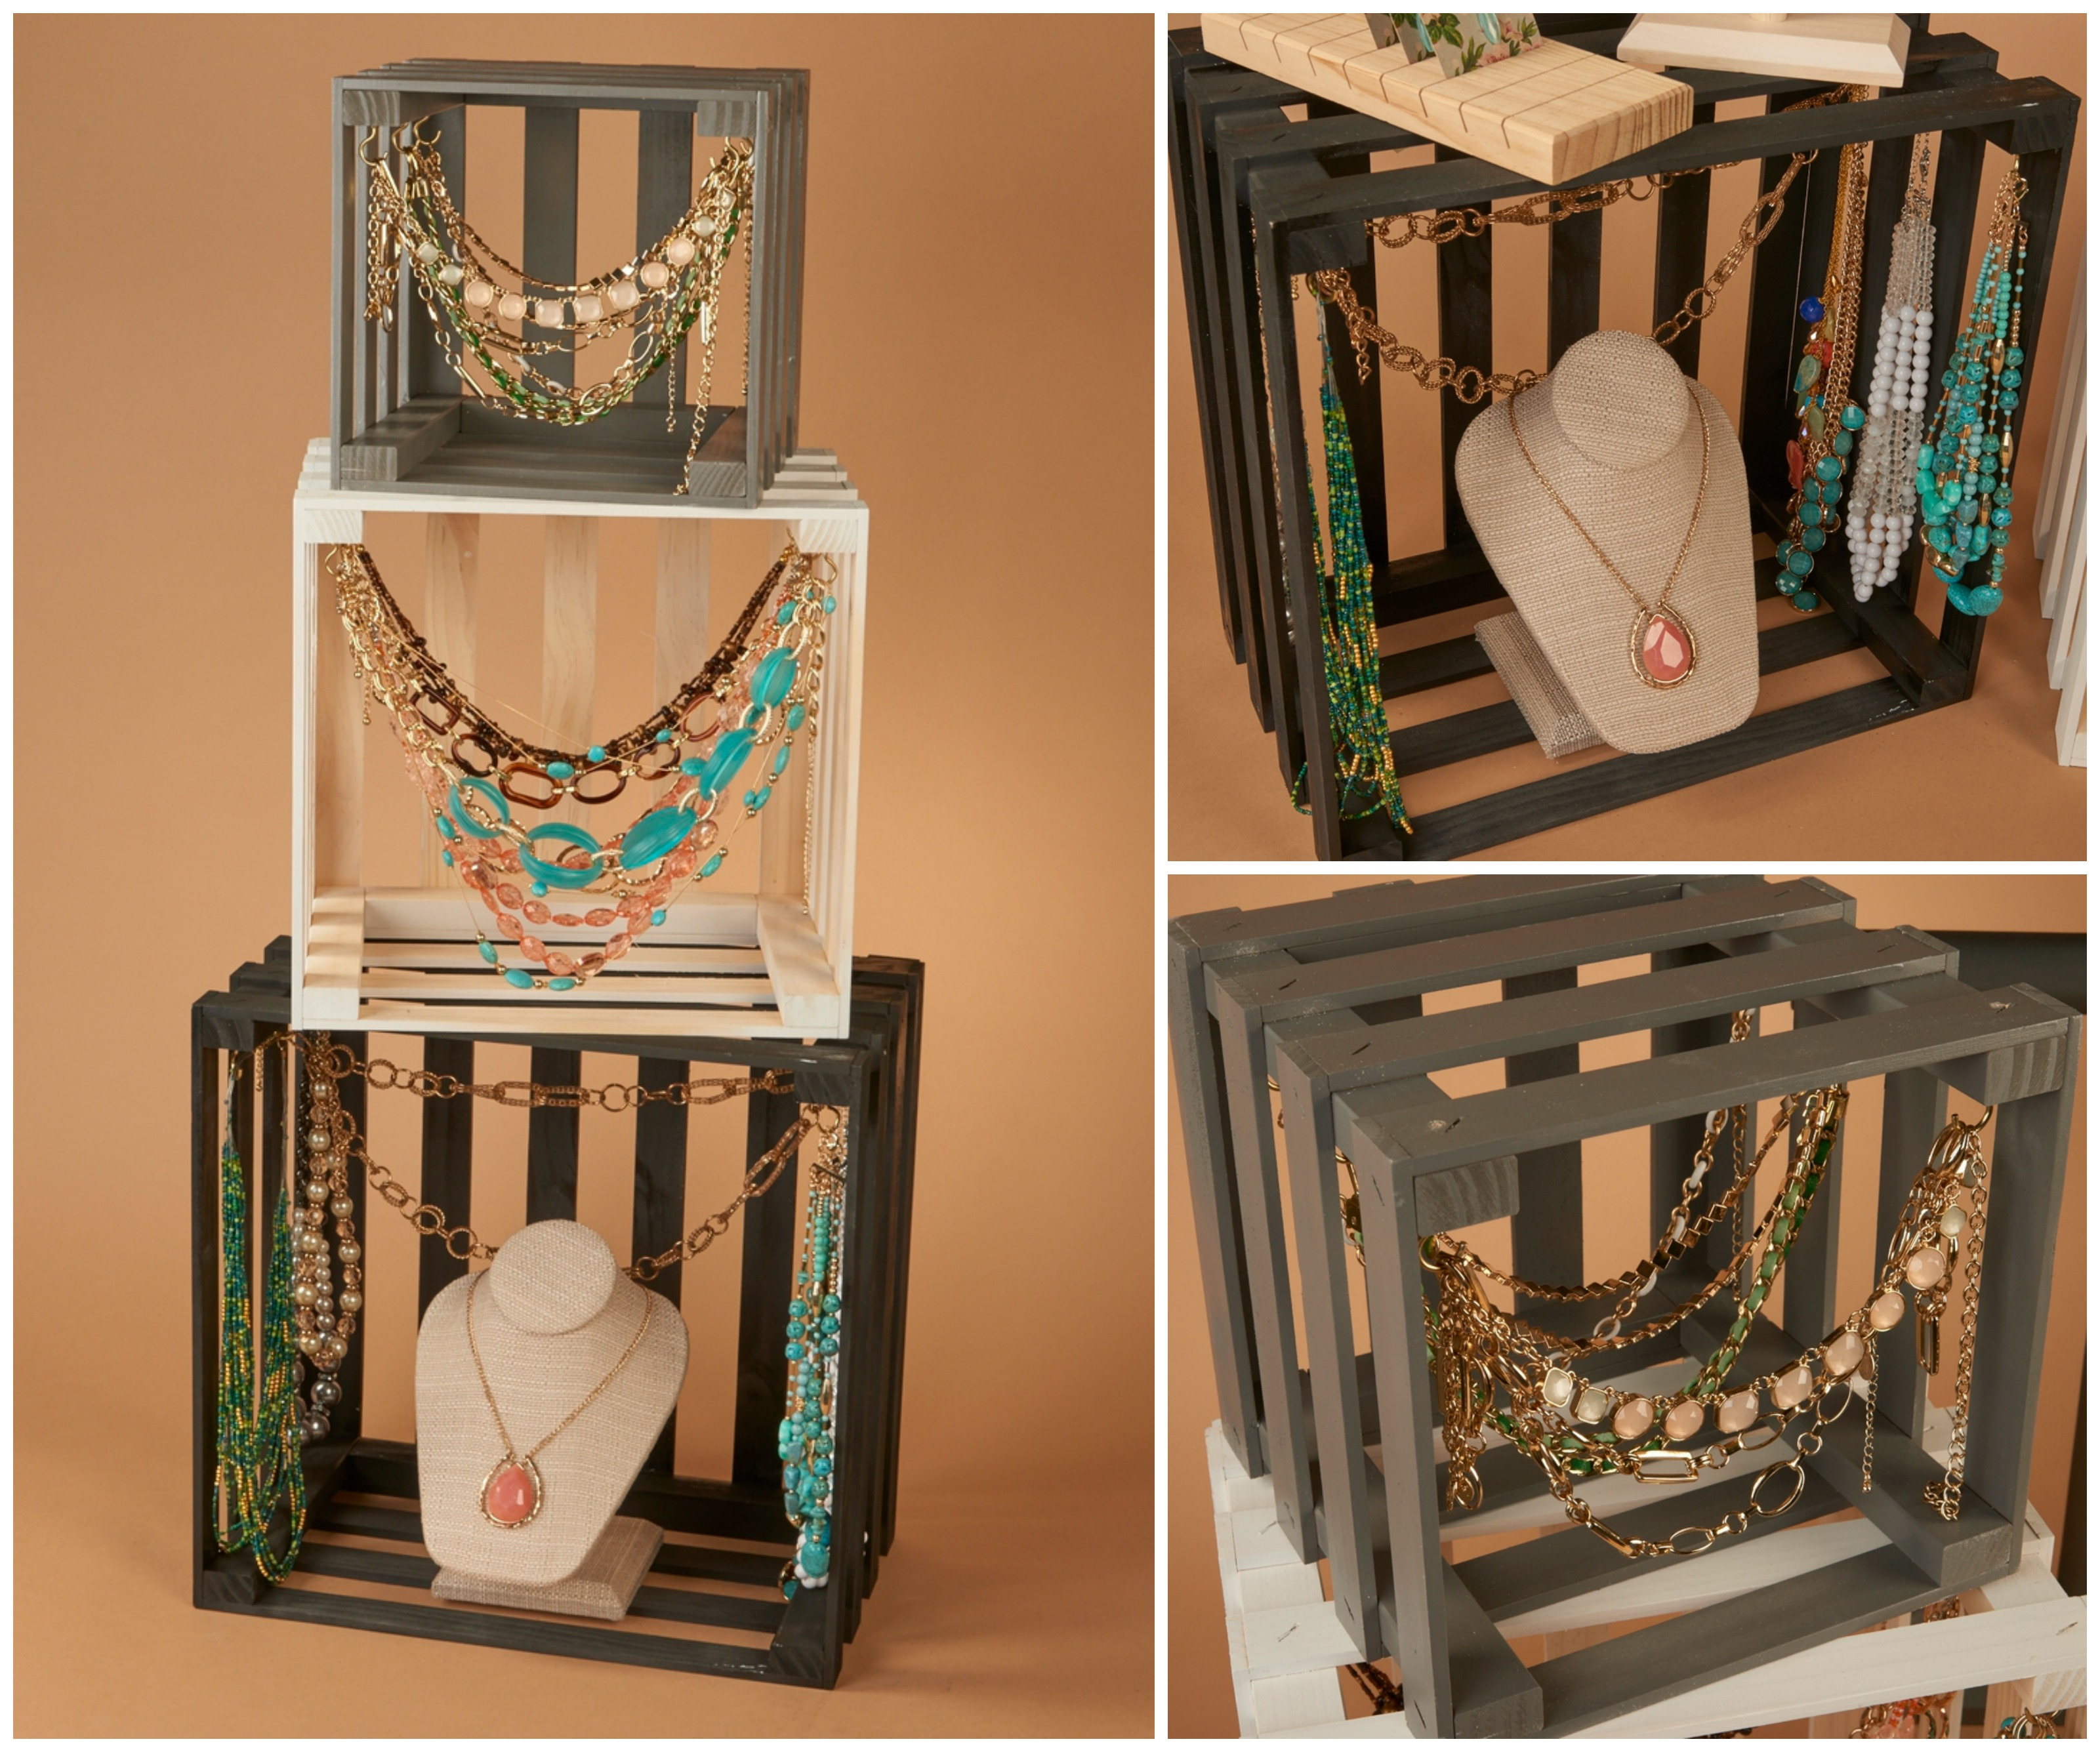 Wooden crates in different sized and colors are great jewelry display ideas, you can attach some hooks to them and use these to hang necklaces, or place necklace and other holders inside of them.